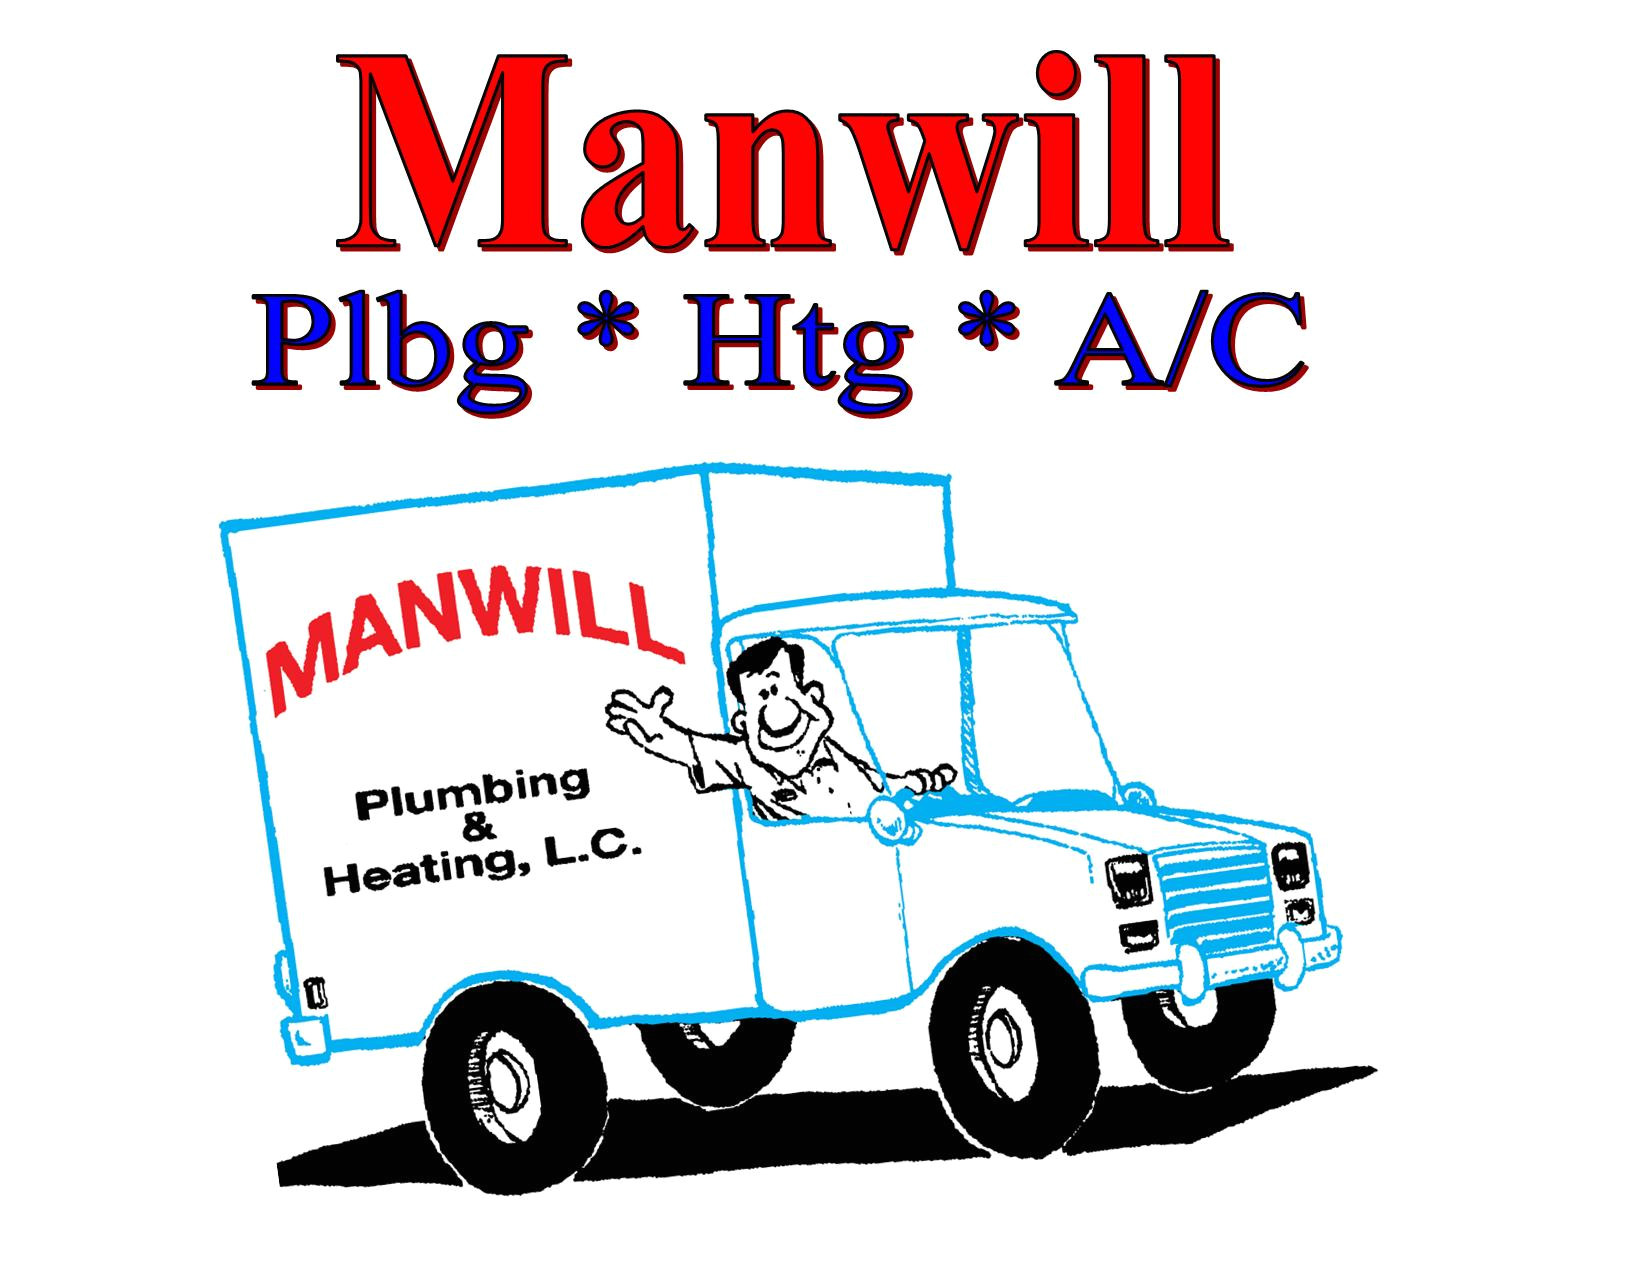 manwill plumbing heating